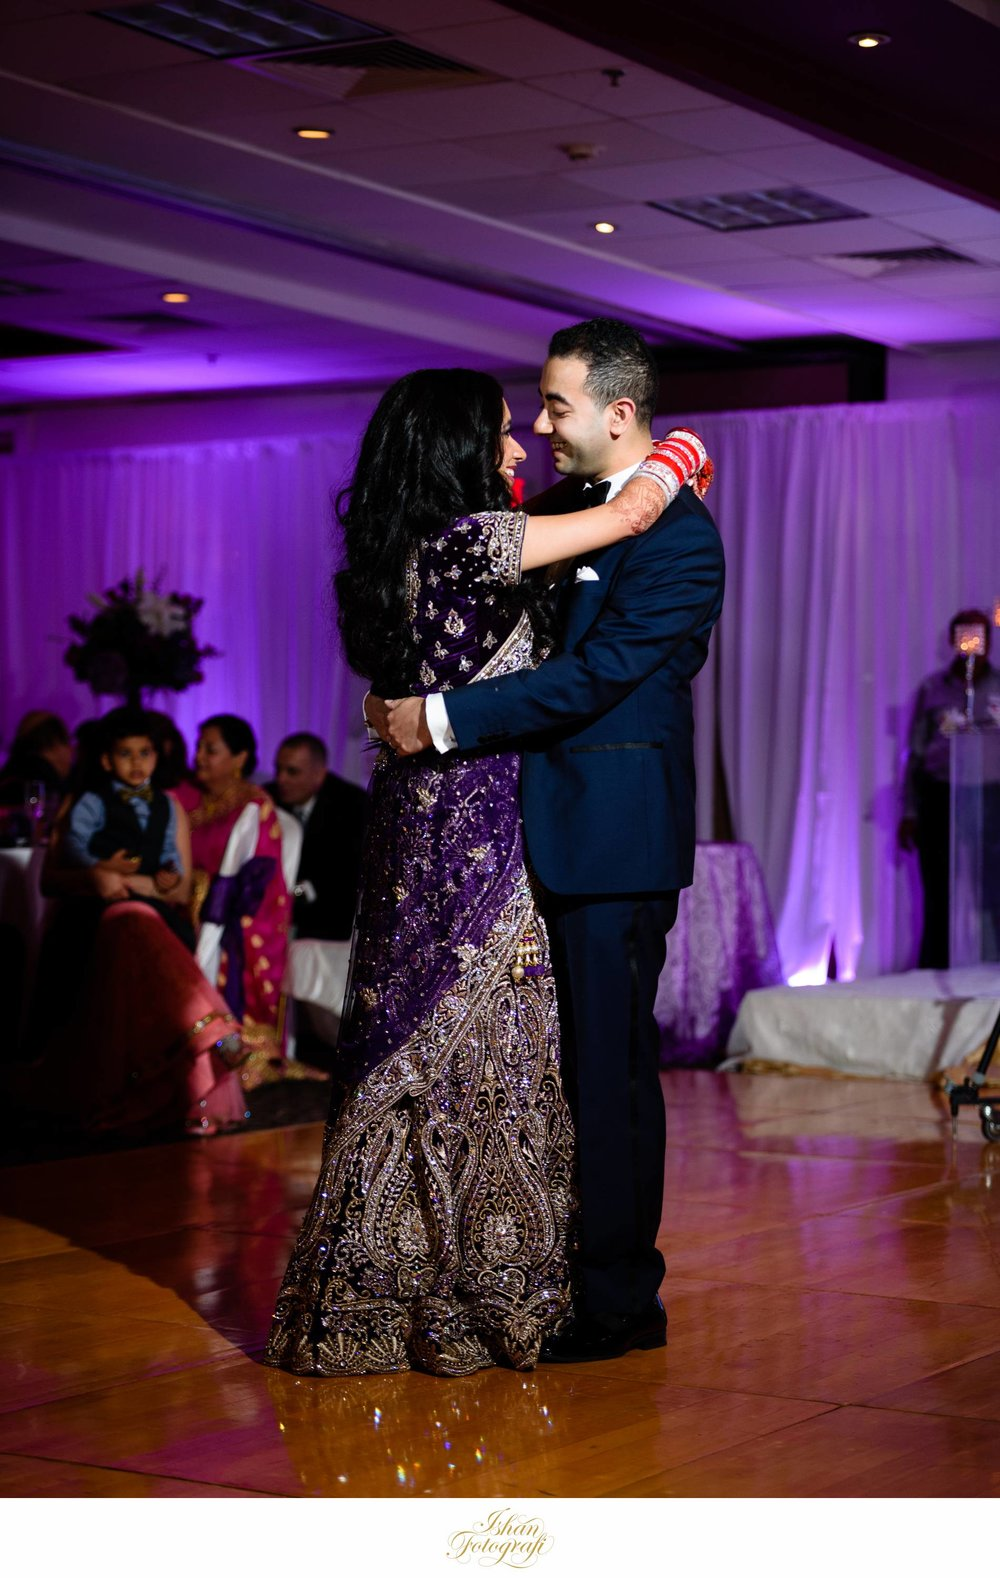 Bride and Groom first dance at Sheraton Parsippany, New Jersey.